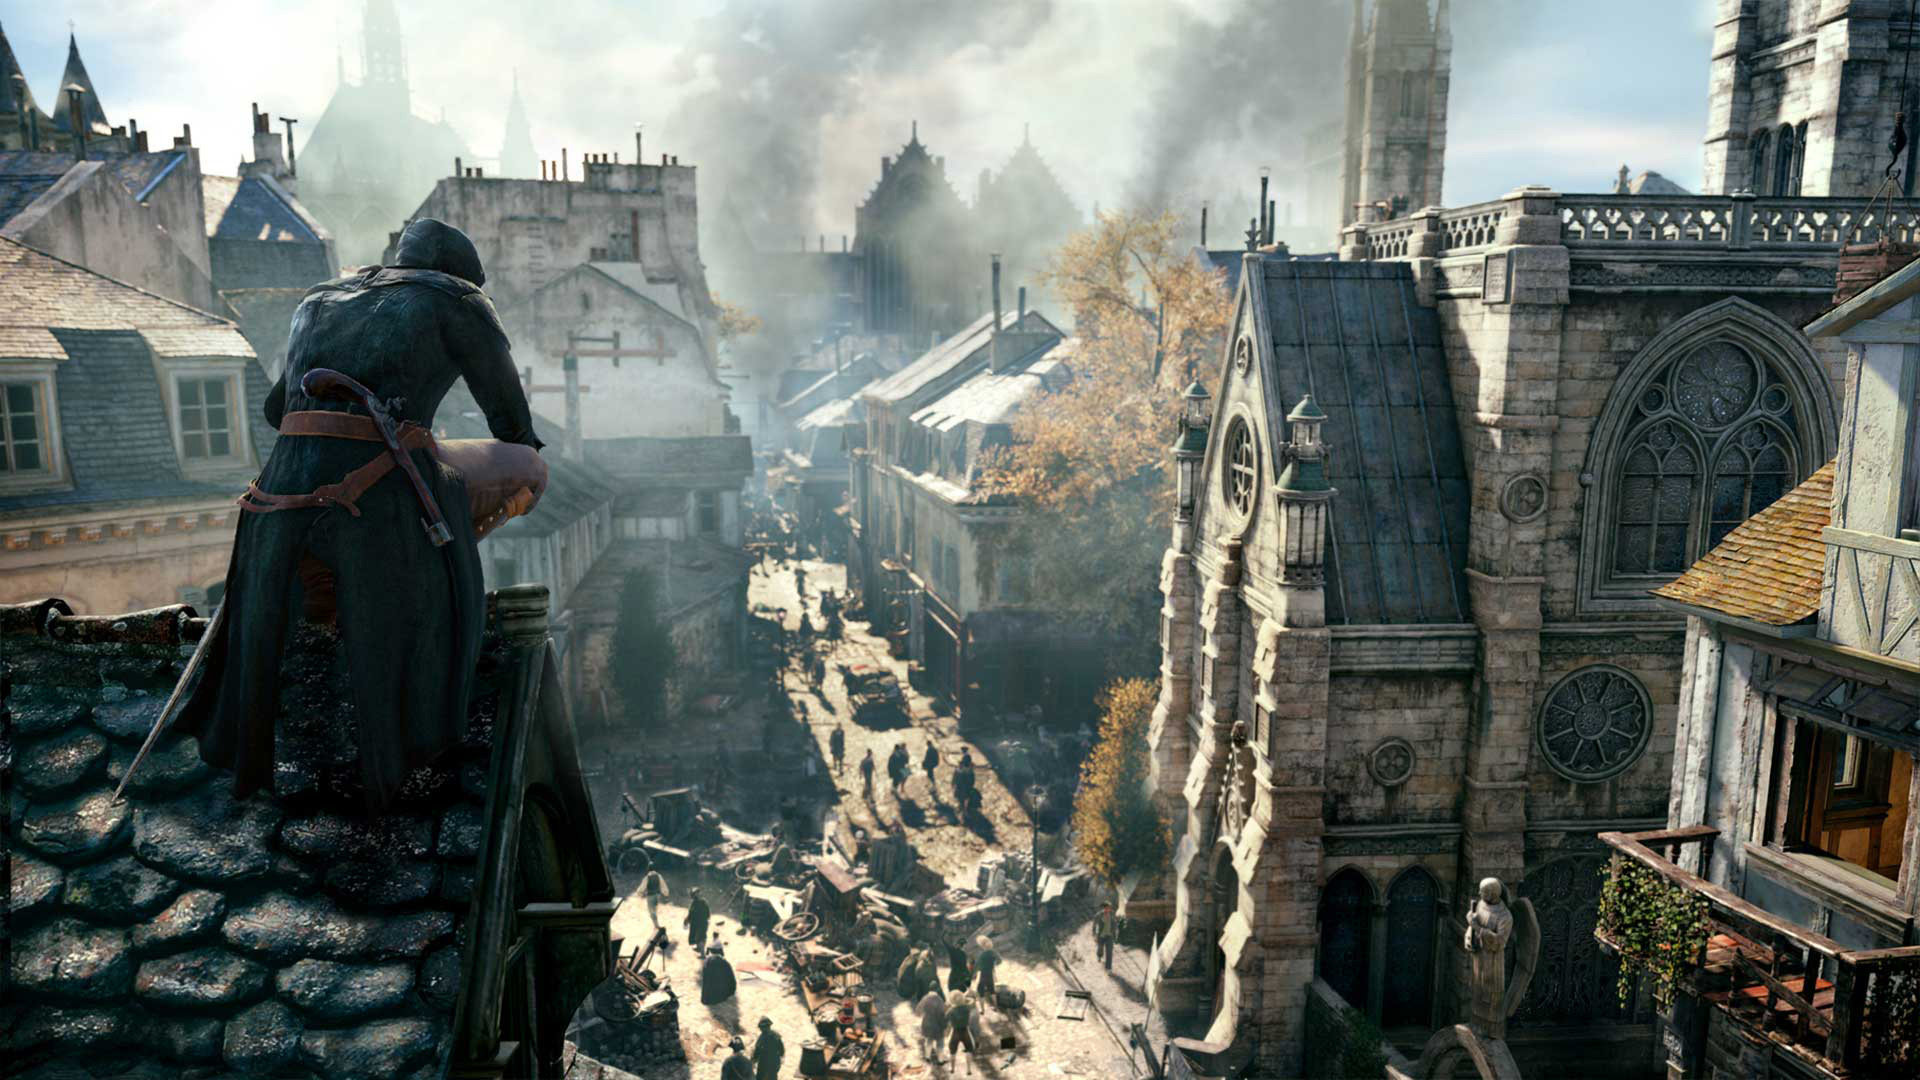 Ubisoft Donates $562,000 To Help Rebuild Notre Dame Cathedral And Offers Assassin's Creed Unity For Free